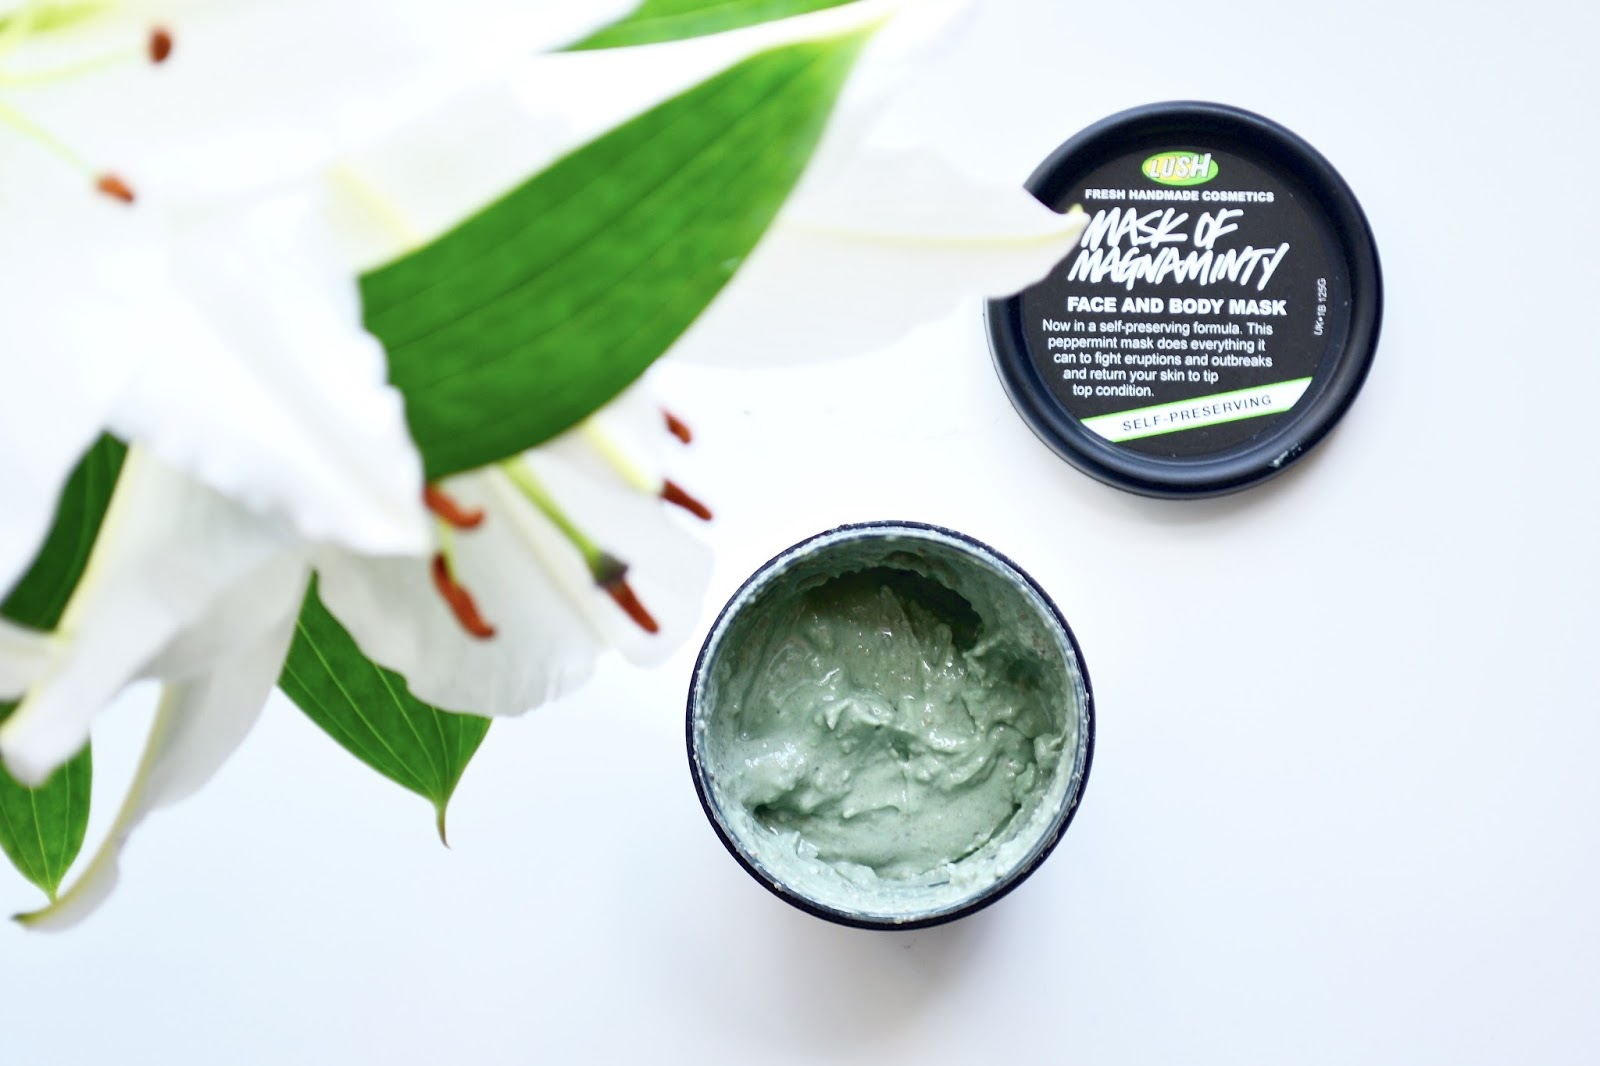 Lush Mask of Magnaminty, Face Mask, Skincare, Lush, Spot free Skin, Beauty, Natural Products,